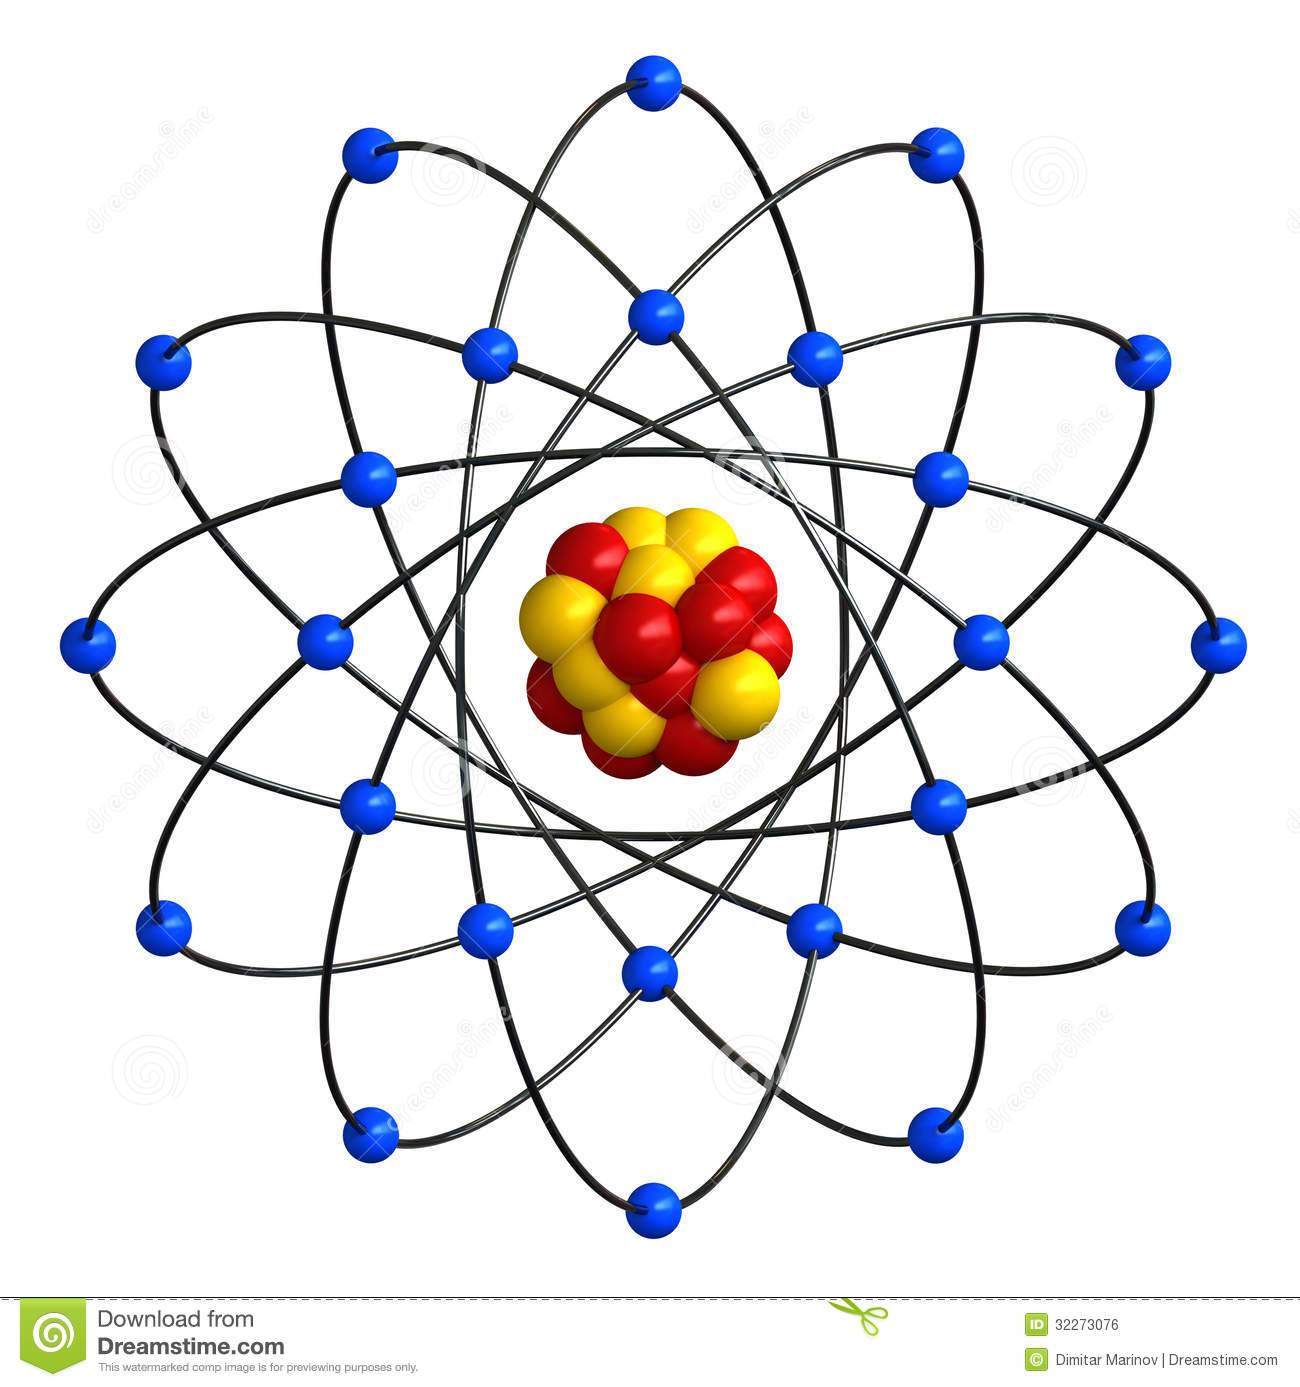 Atomic structure stock illustration illustration of structure download atomic structure stock illustration illustration of structure 32273076 ccuart Gallery